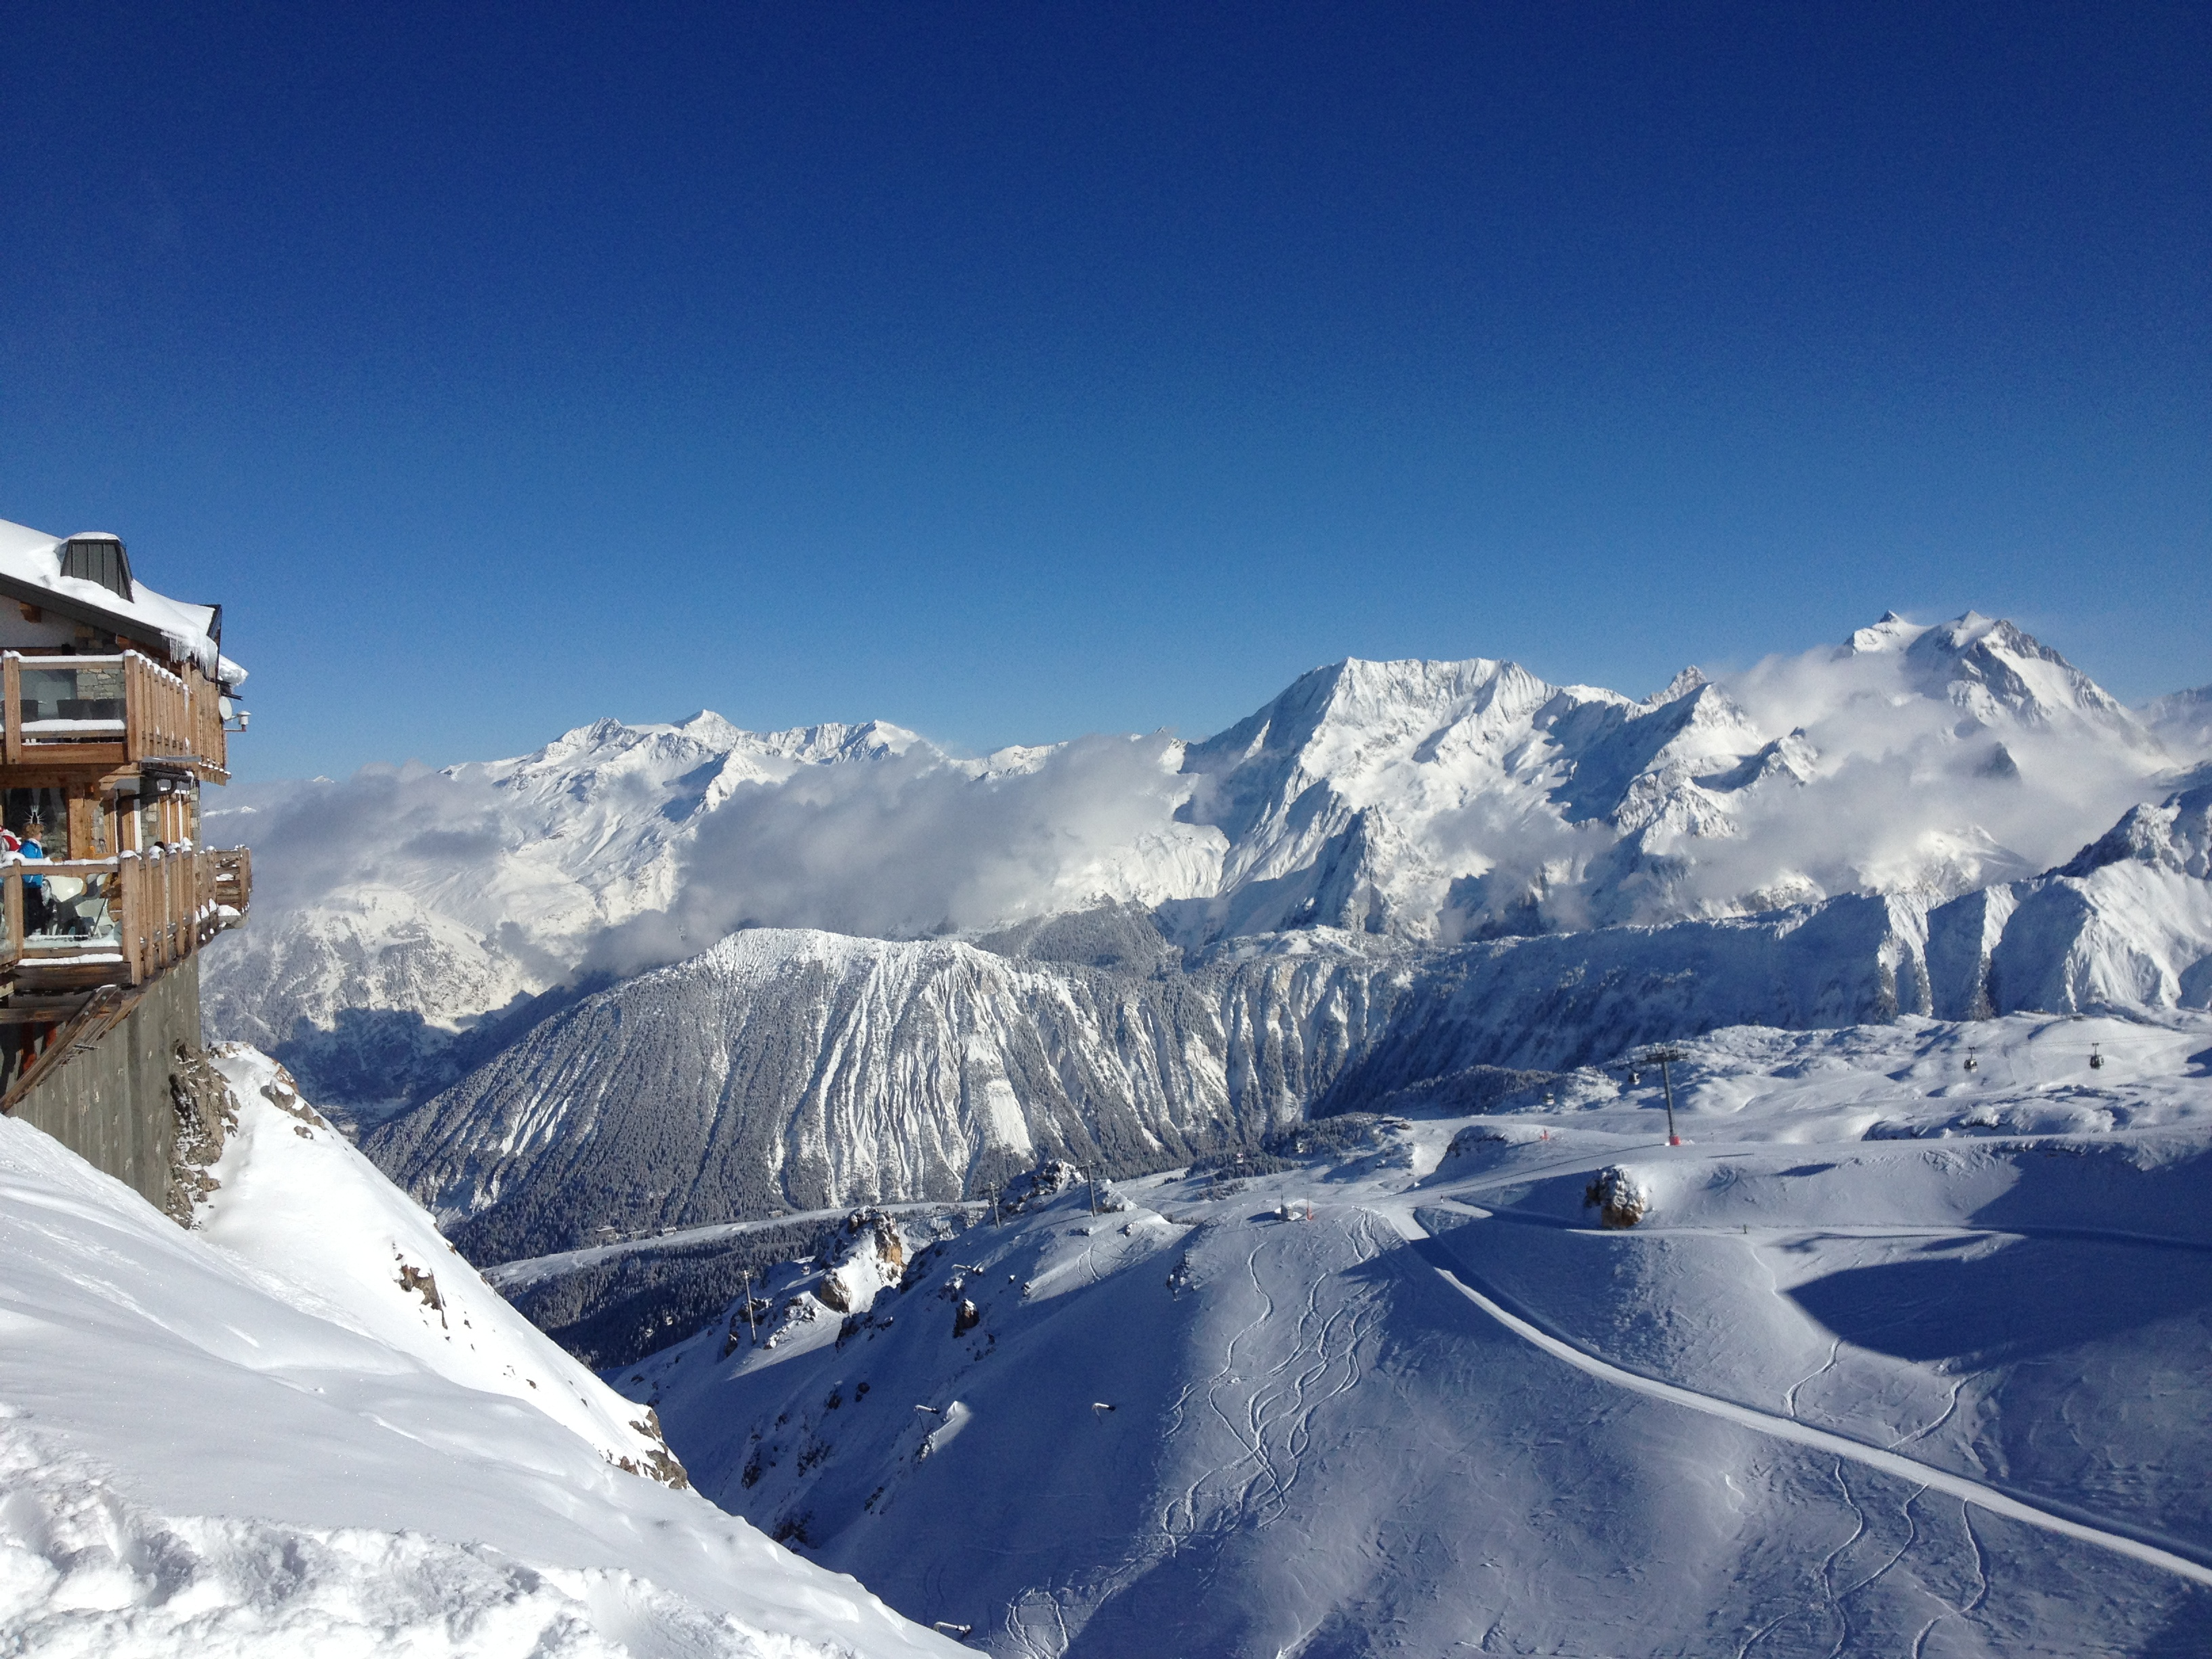 Morning View, Courchevel